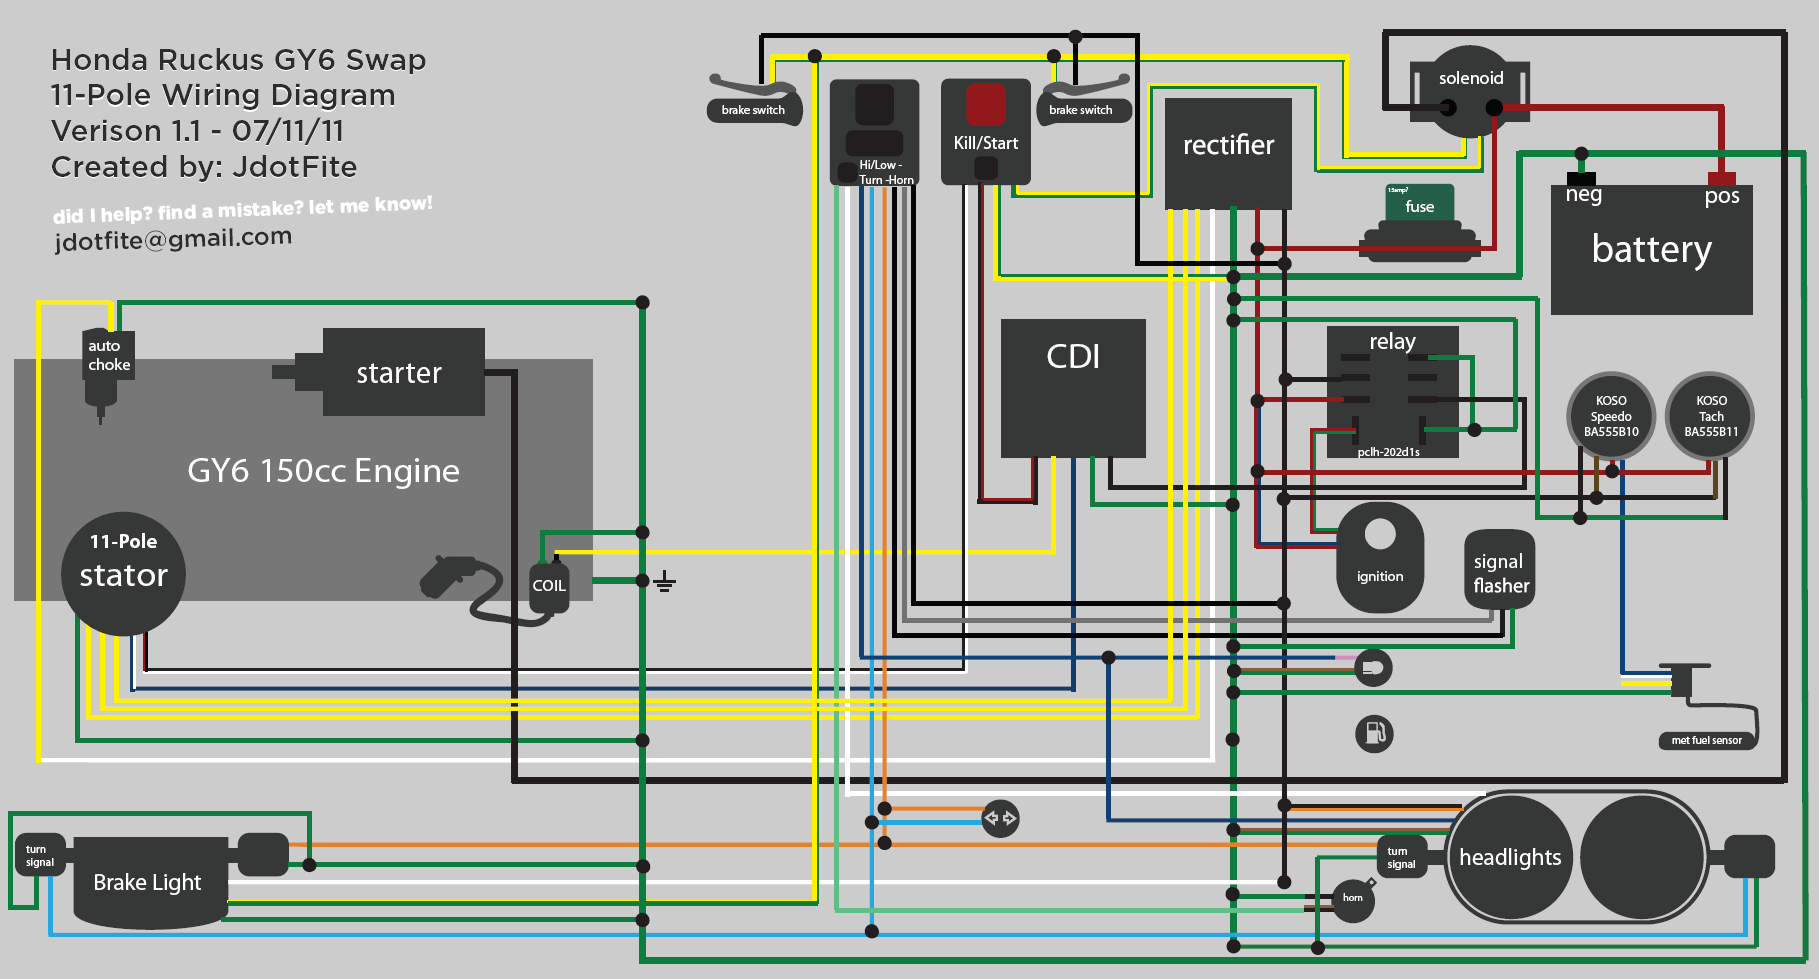 150Cc Gy6 Wiring Diagram Within Webtor Me And Katherinemarie Best Of | Electrical  diagram, Electric go kart, Honda ruckusPinterest